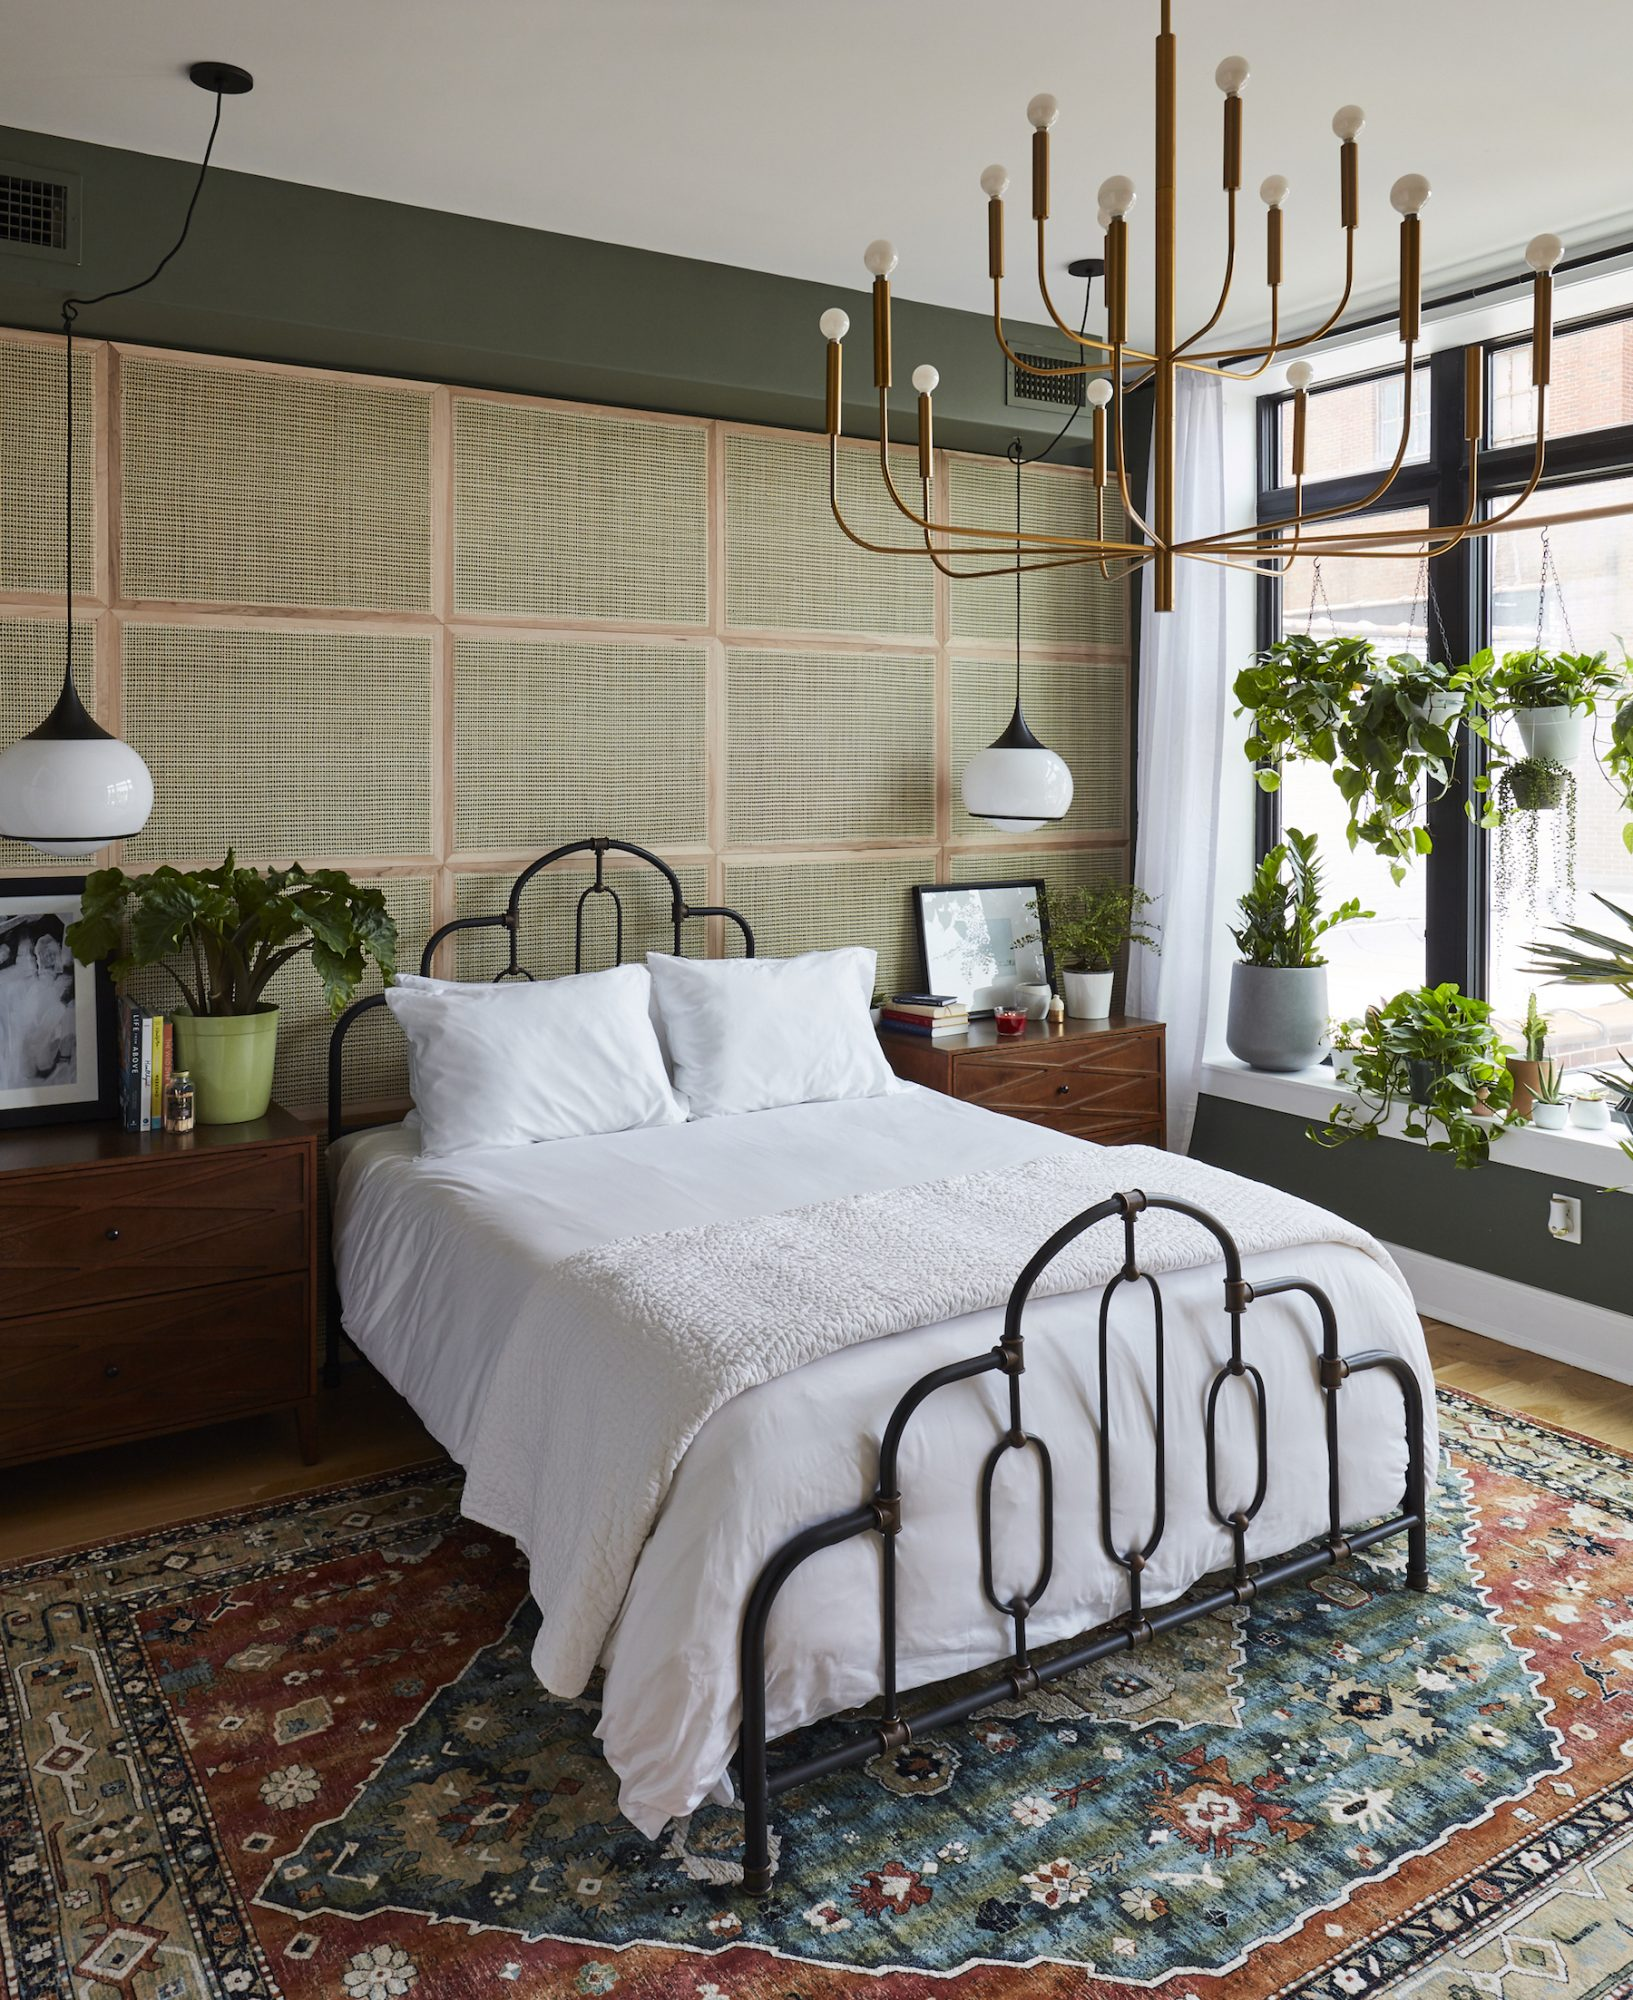 Real Simple Home Bedroom with plants